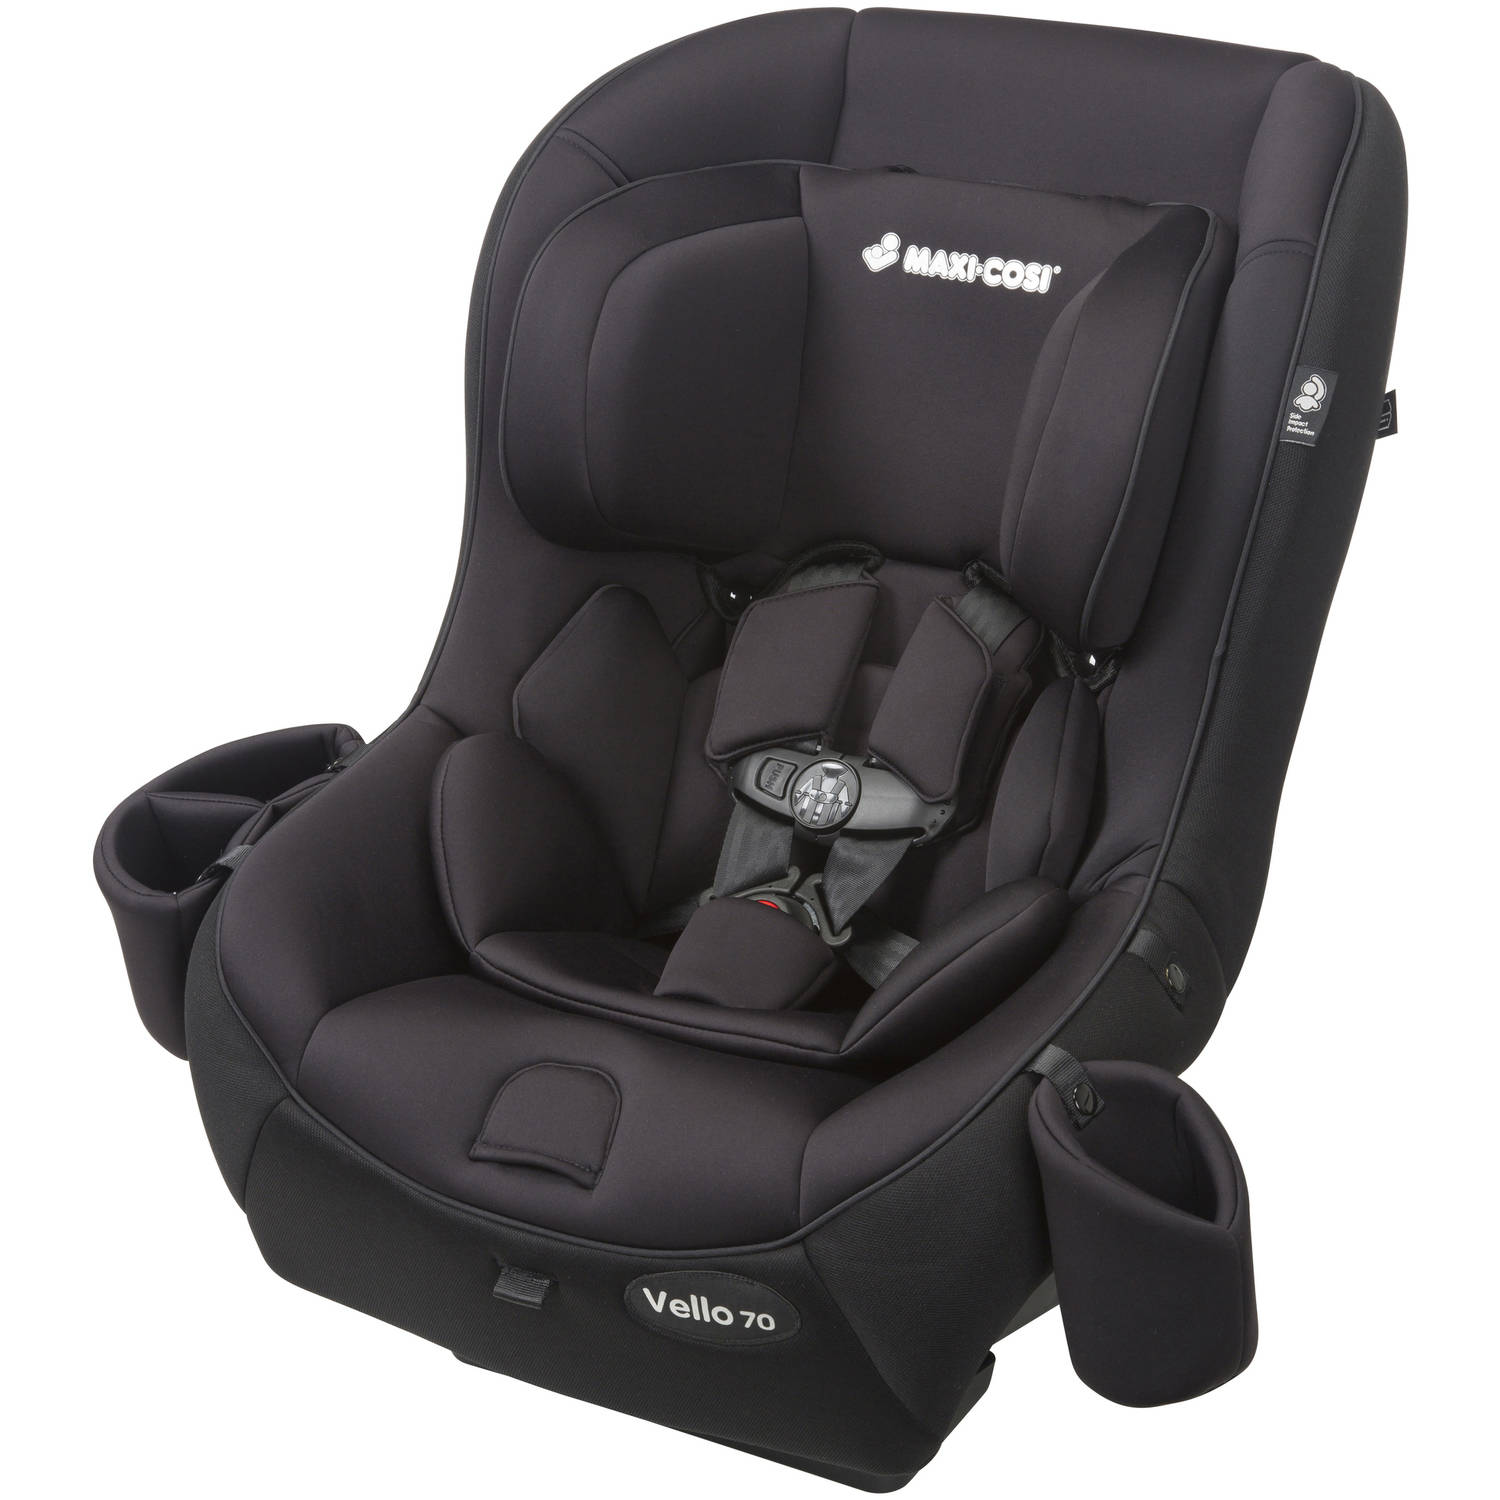 maxi cosi pria 70 convertible car seat choose your color. Black Bedroom Furniture Sets. Home Design Ideas